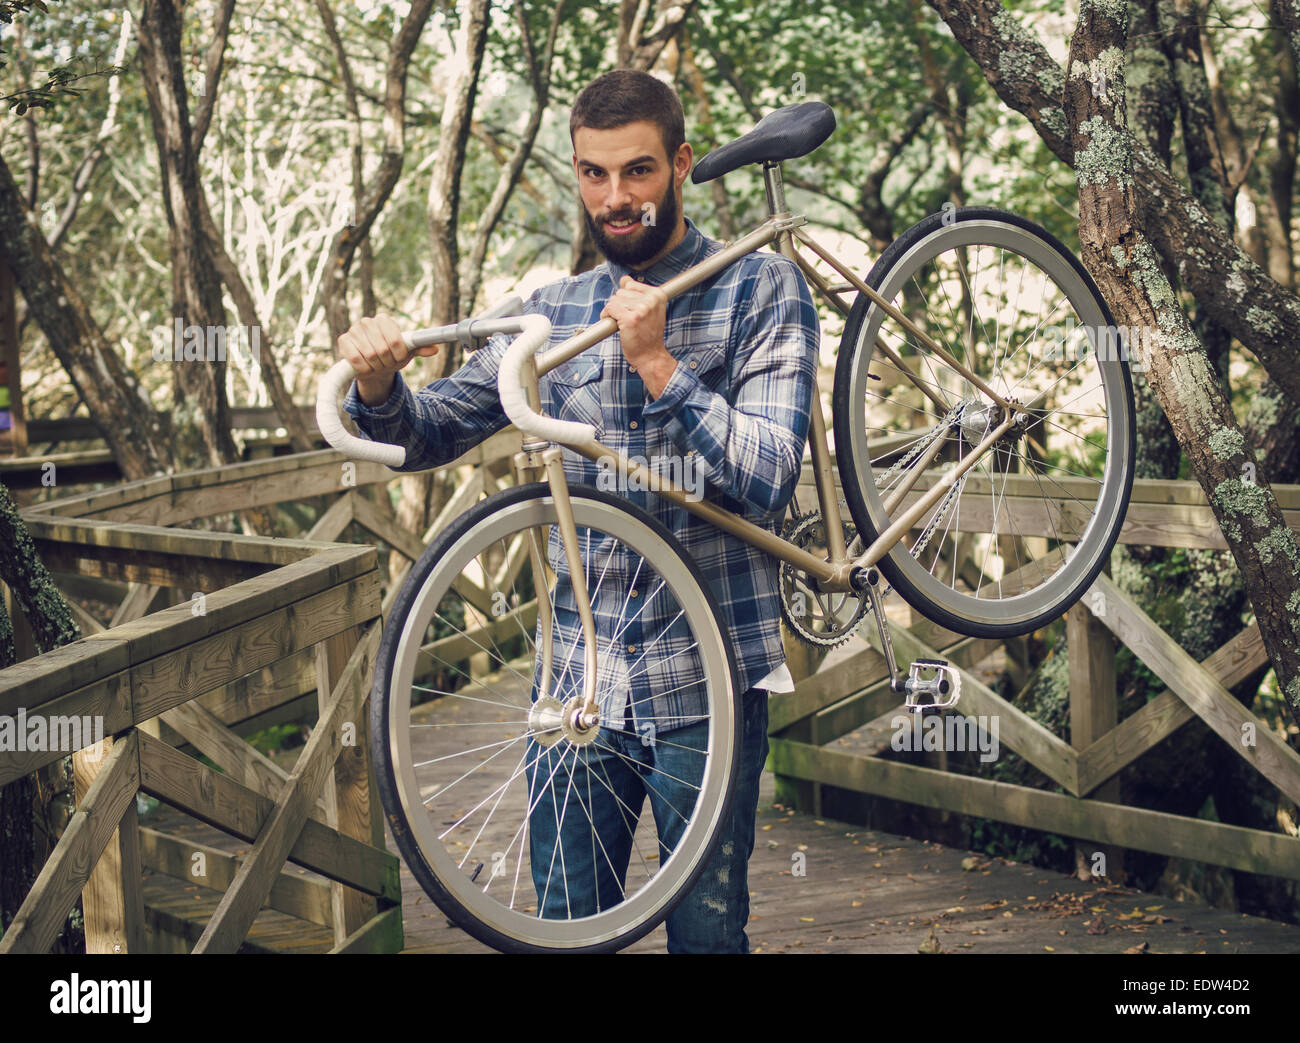 Hipster man holding his bicycle in a park outdoors - Stock Image